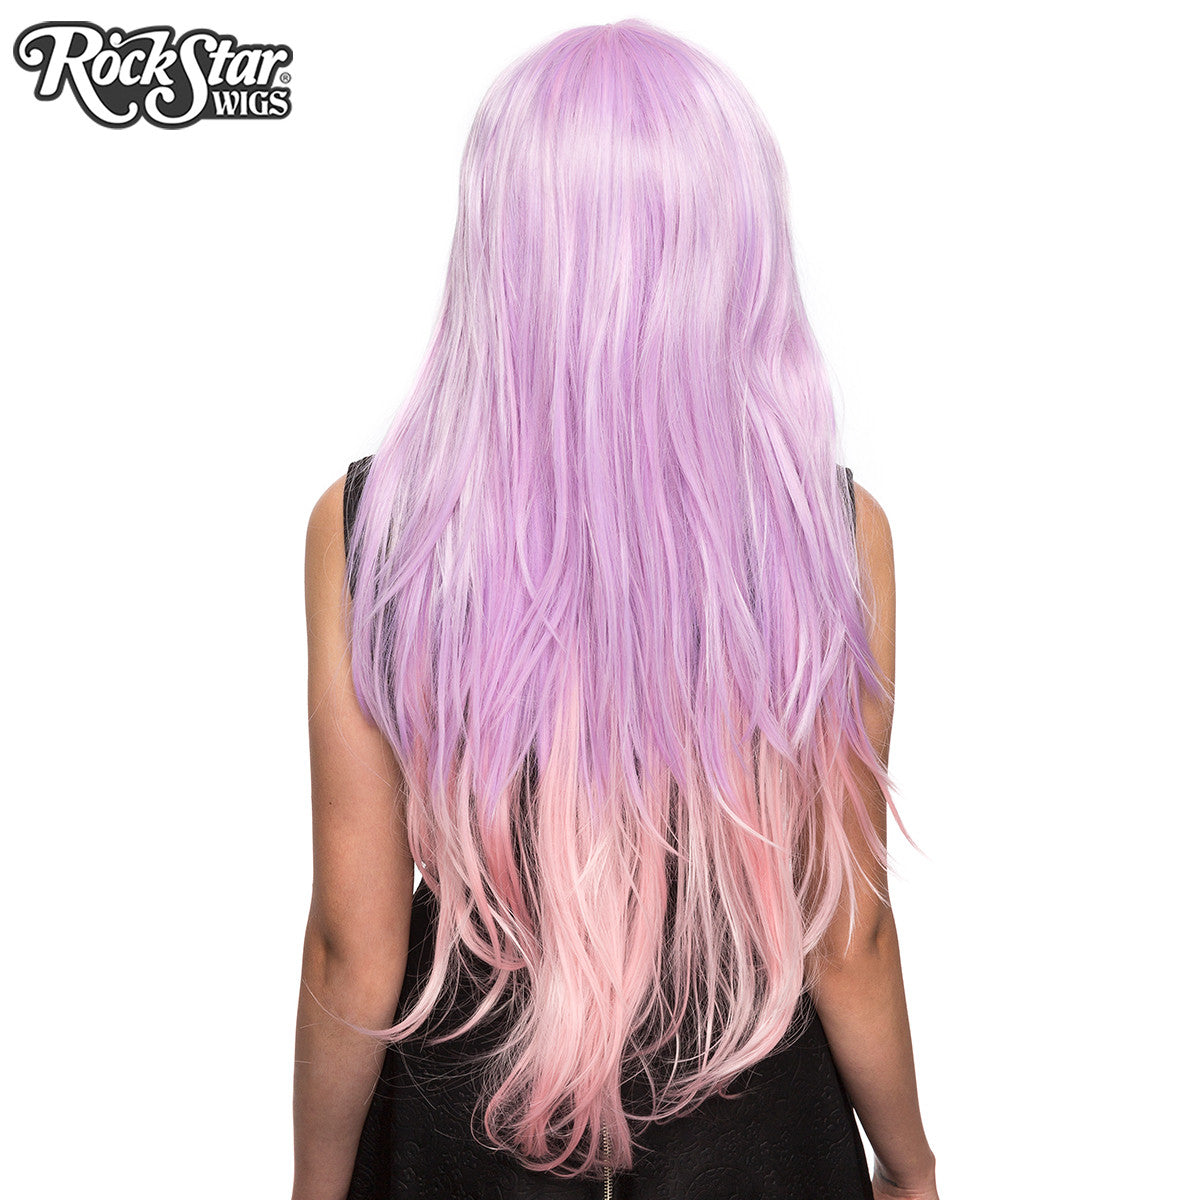 RockStar Wigs® <br> Ombre Alexa™ Collection - Lavender to Pink Fade -00200